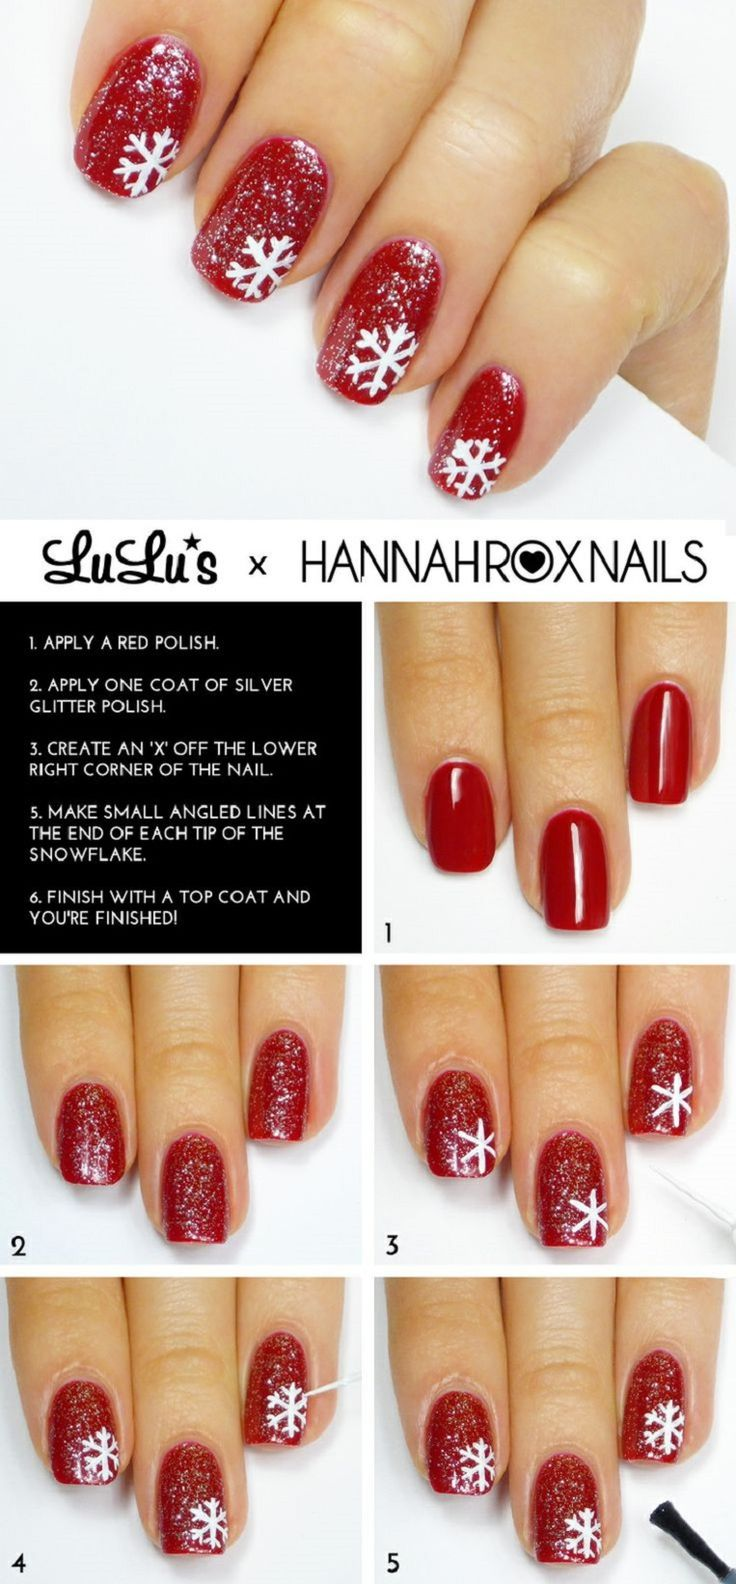 100 best Nails images on Pinterest | Manicures, Nail salons and ...